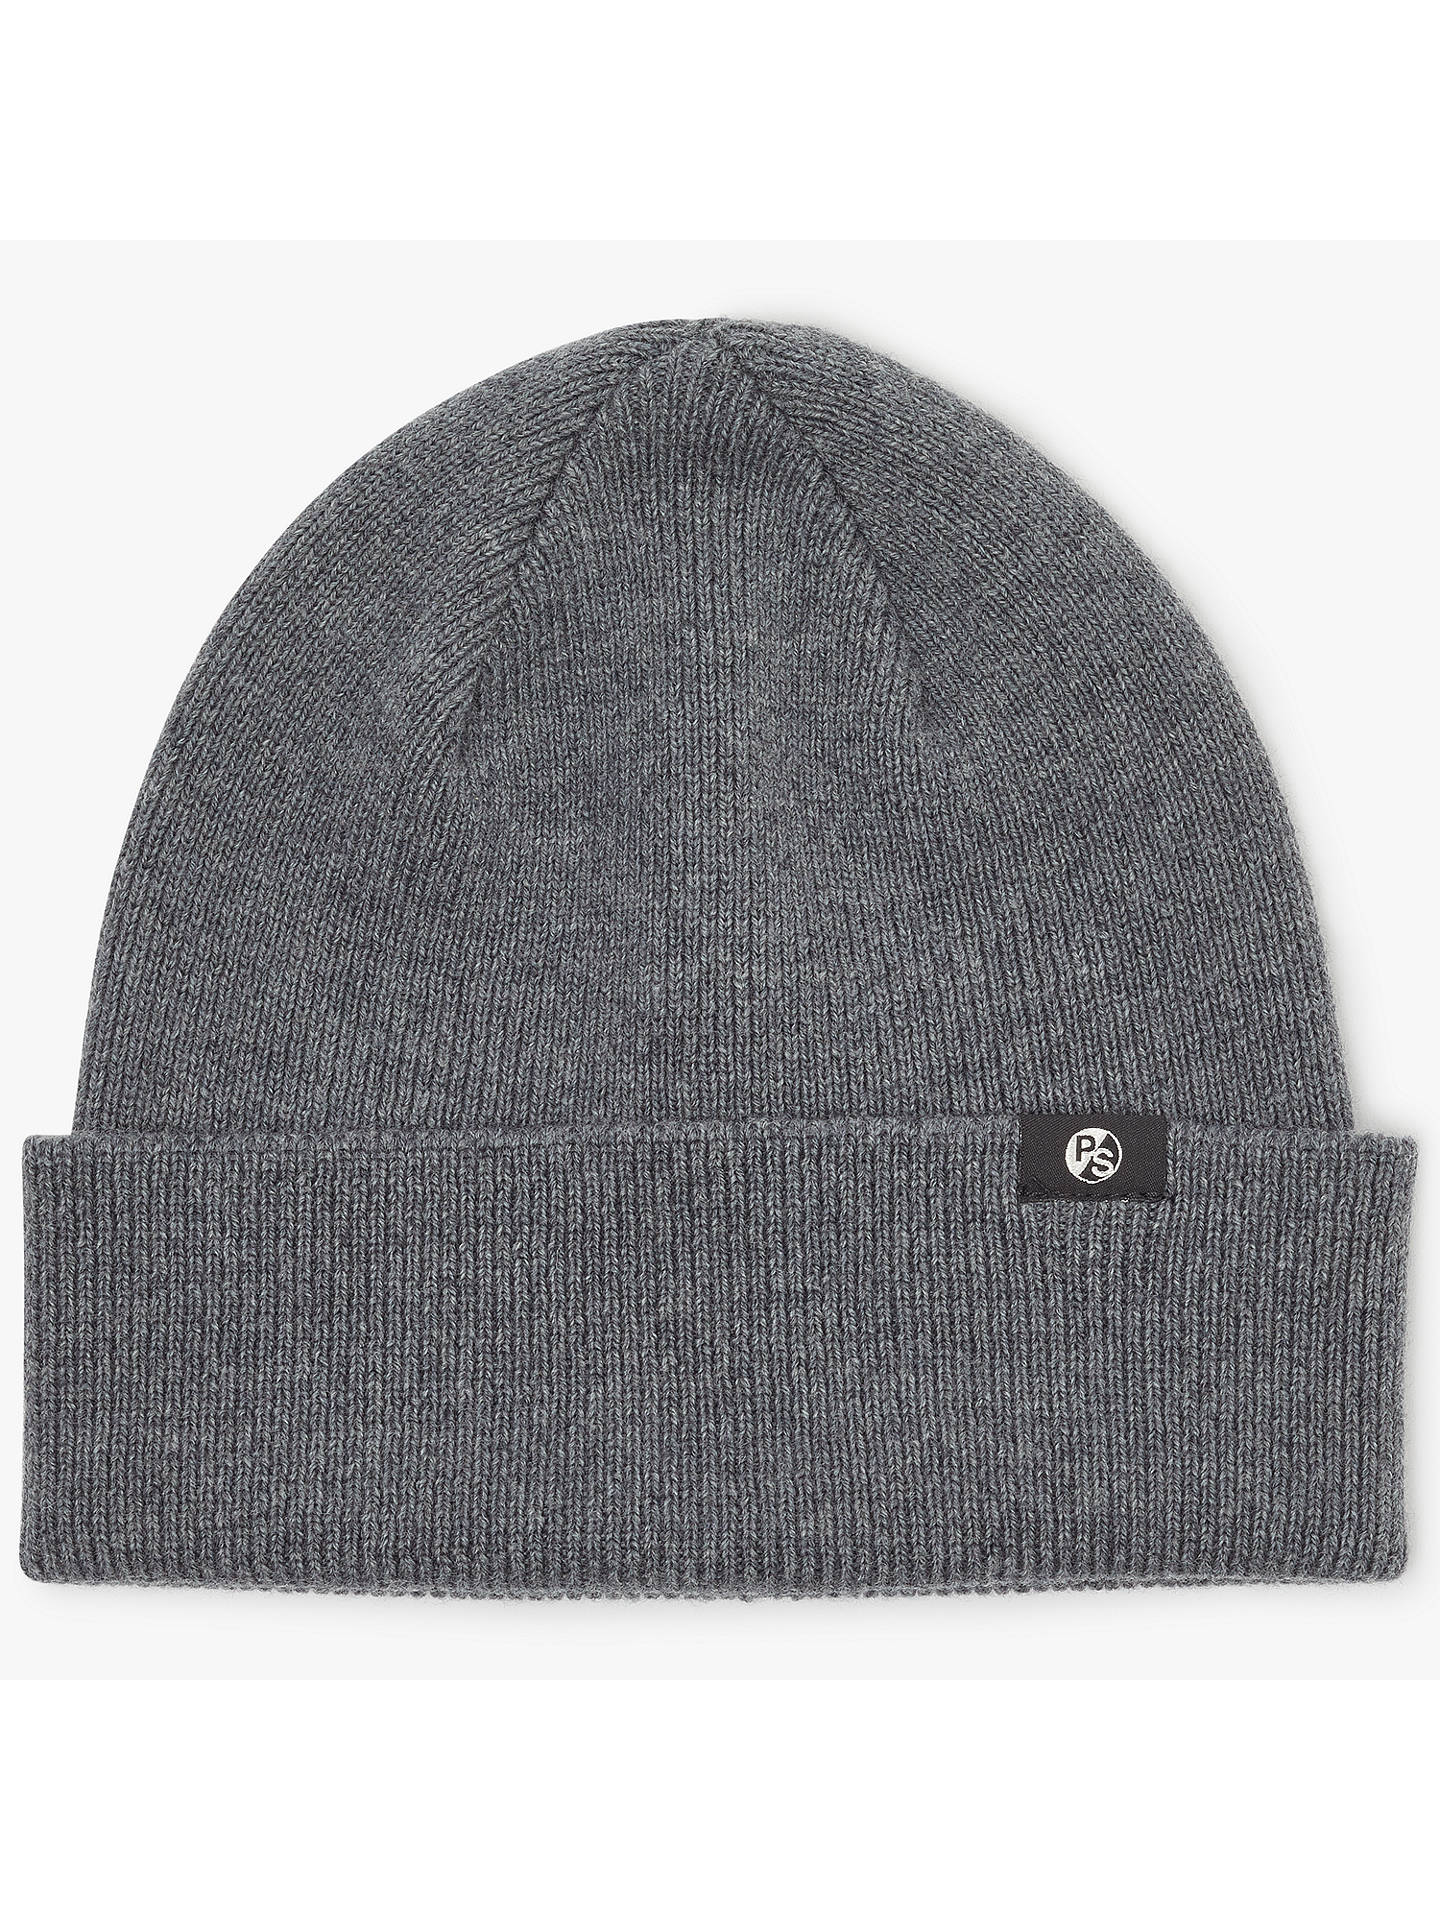 b8bfb80cca320a Buy Paul Smith Merino Wool Beanie Hat, One Size, Grey Online at johnlewis.